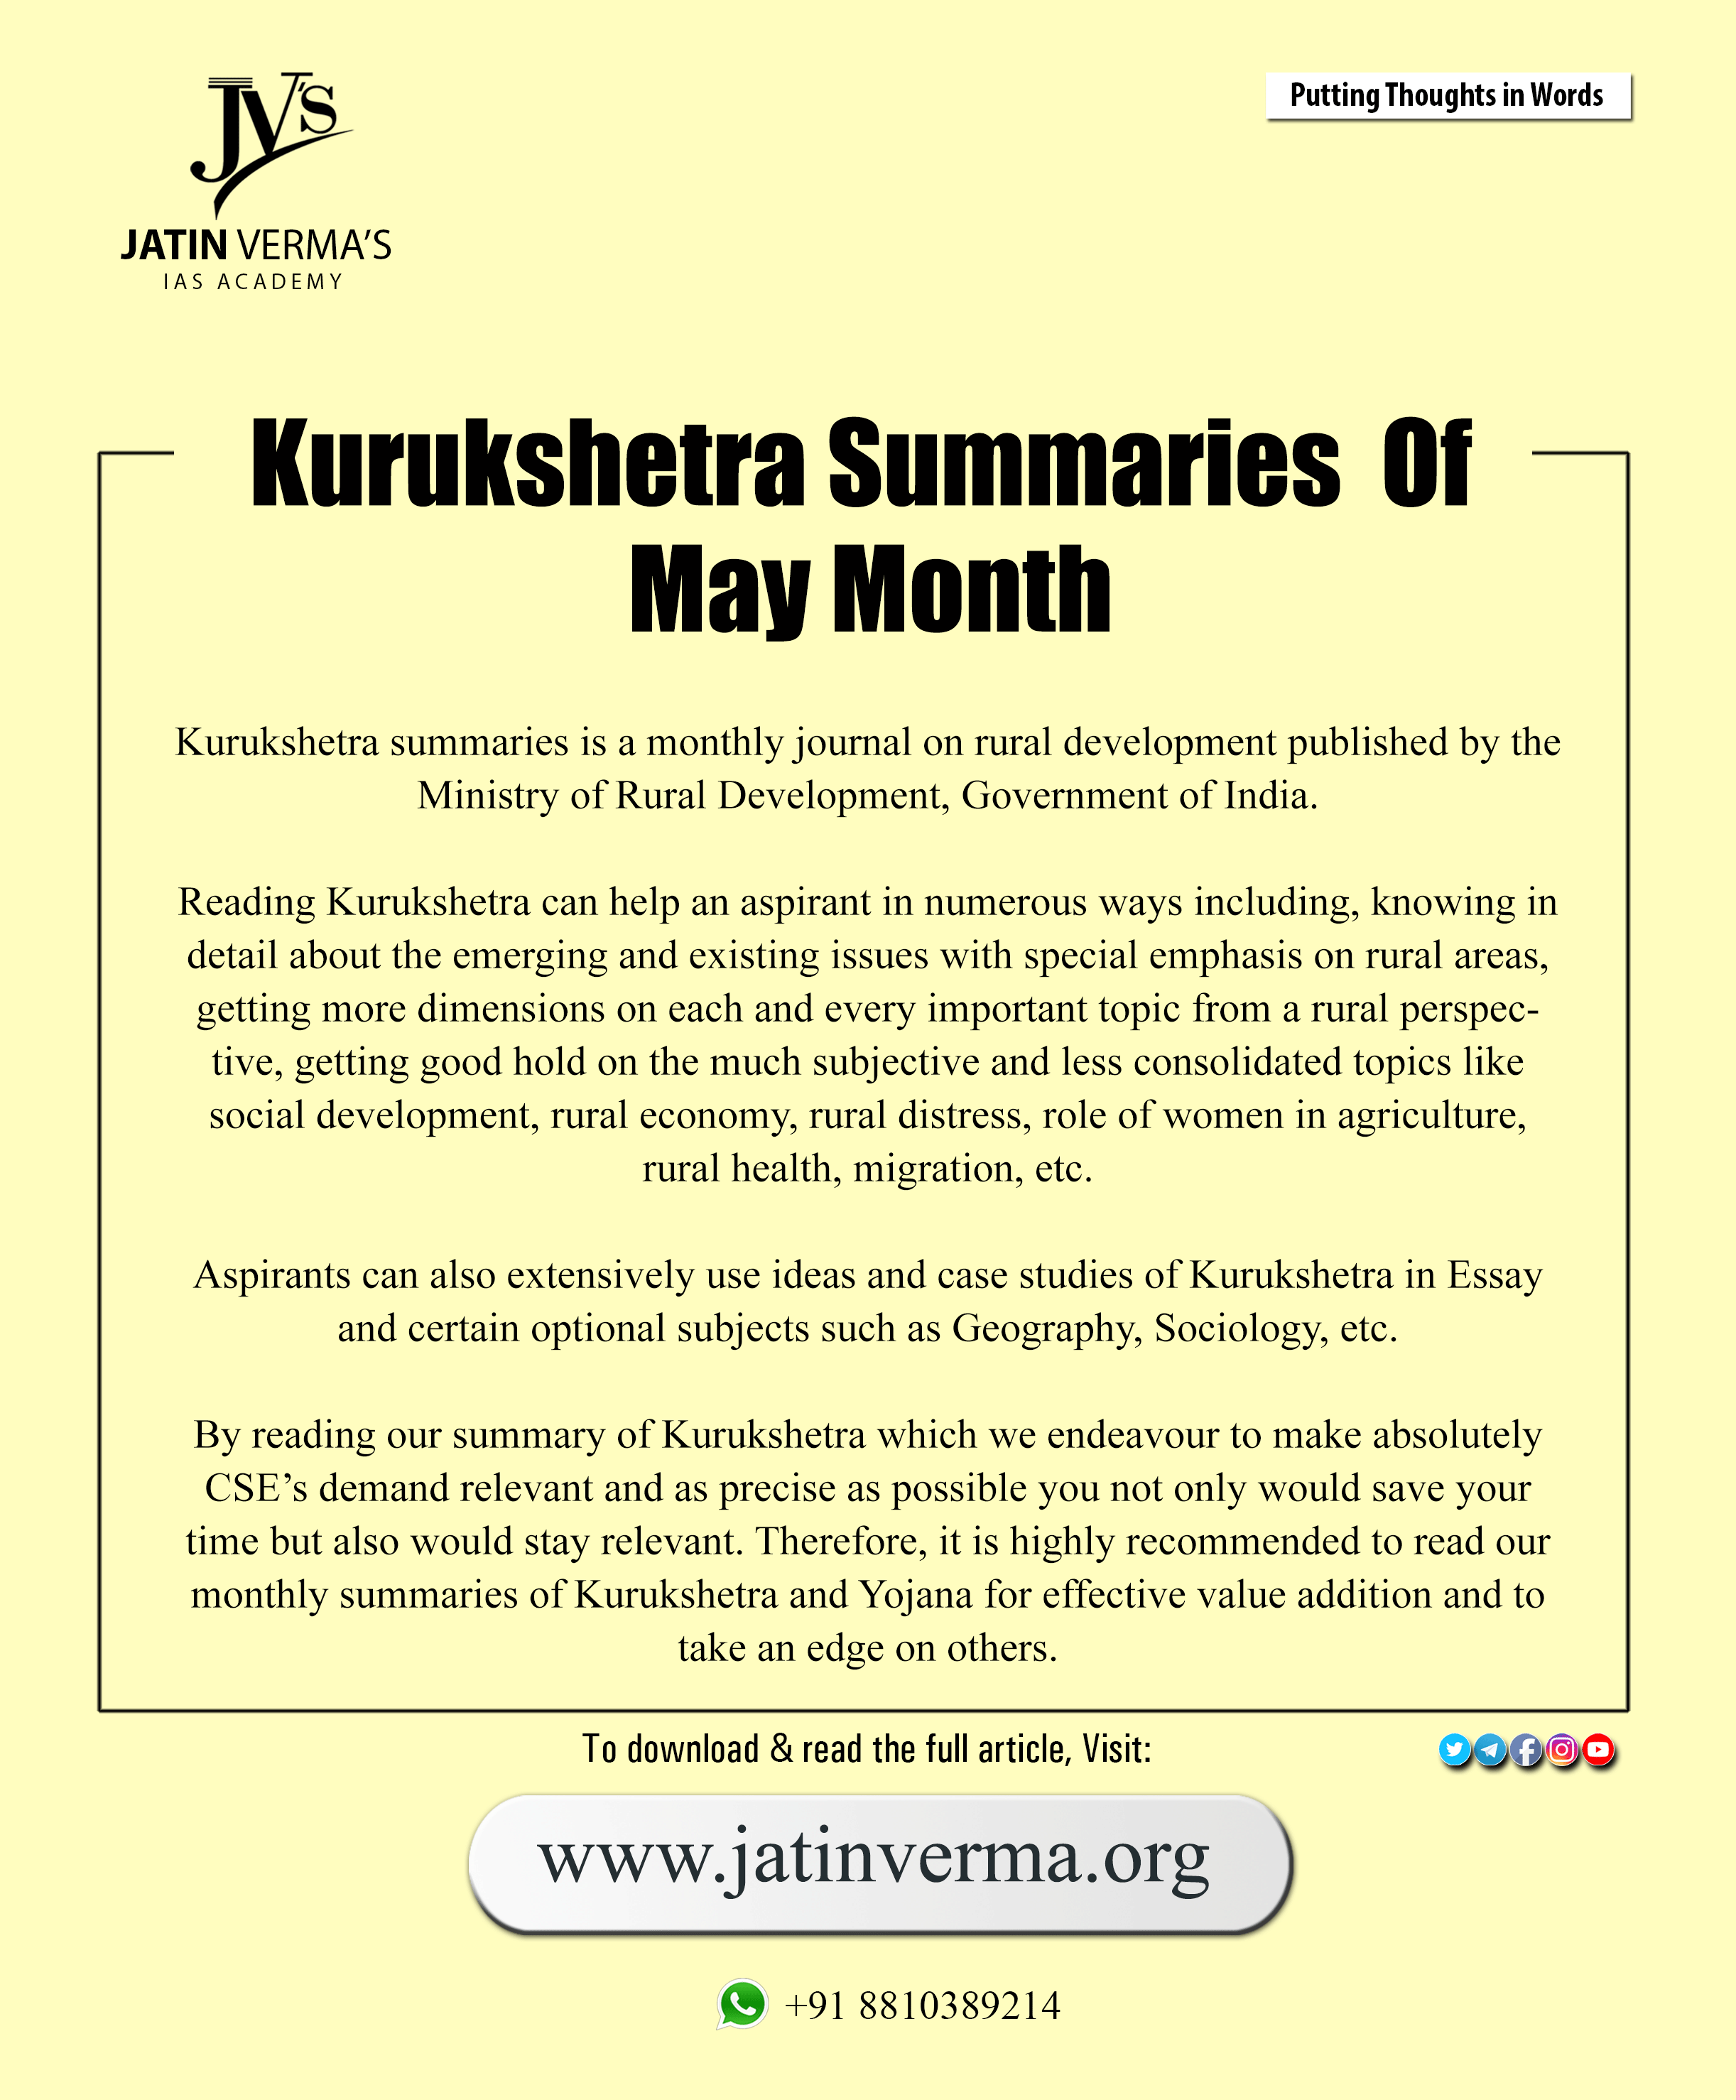 The Kurukshetra summaries is a monthly journal on the